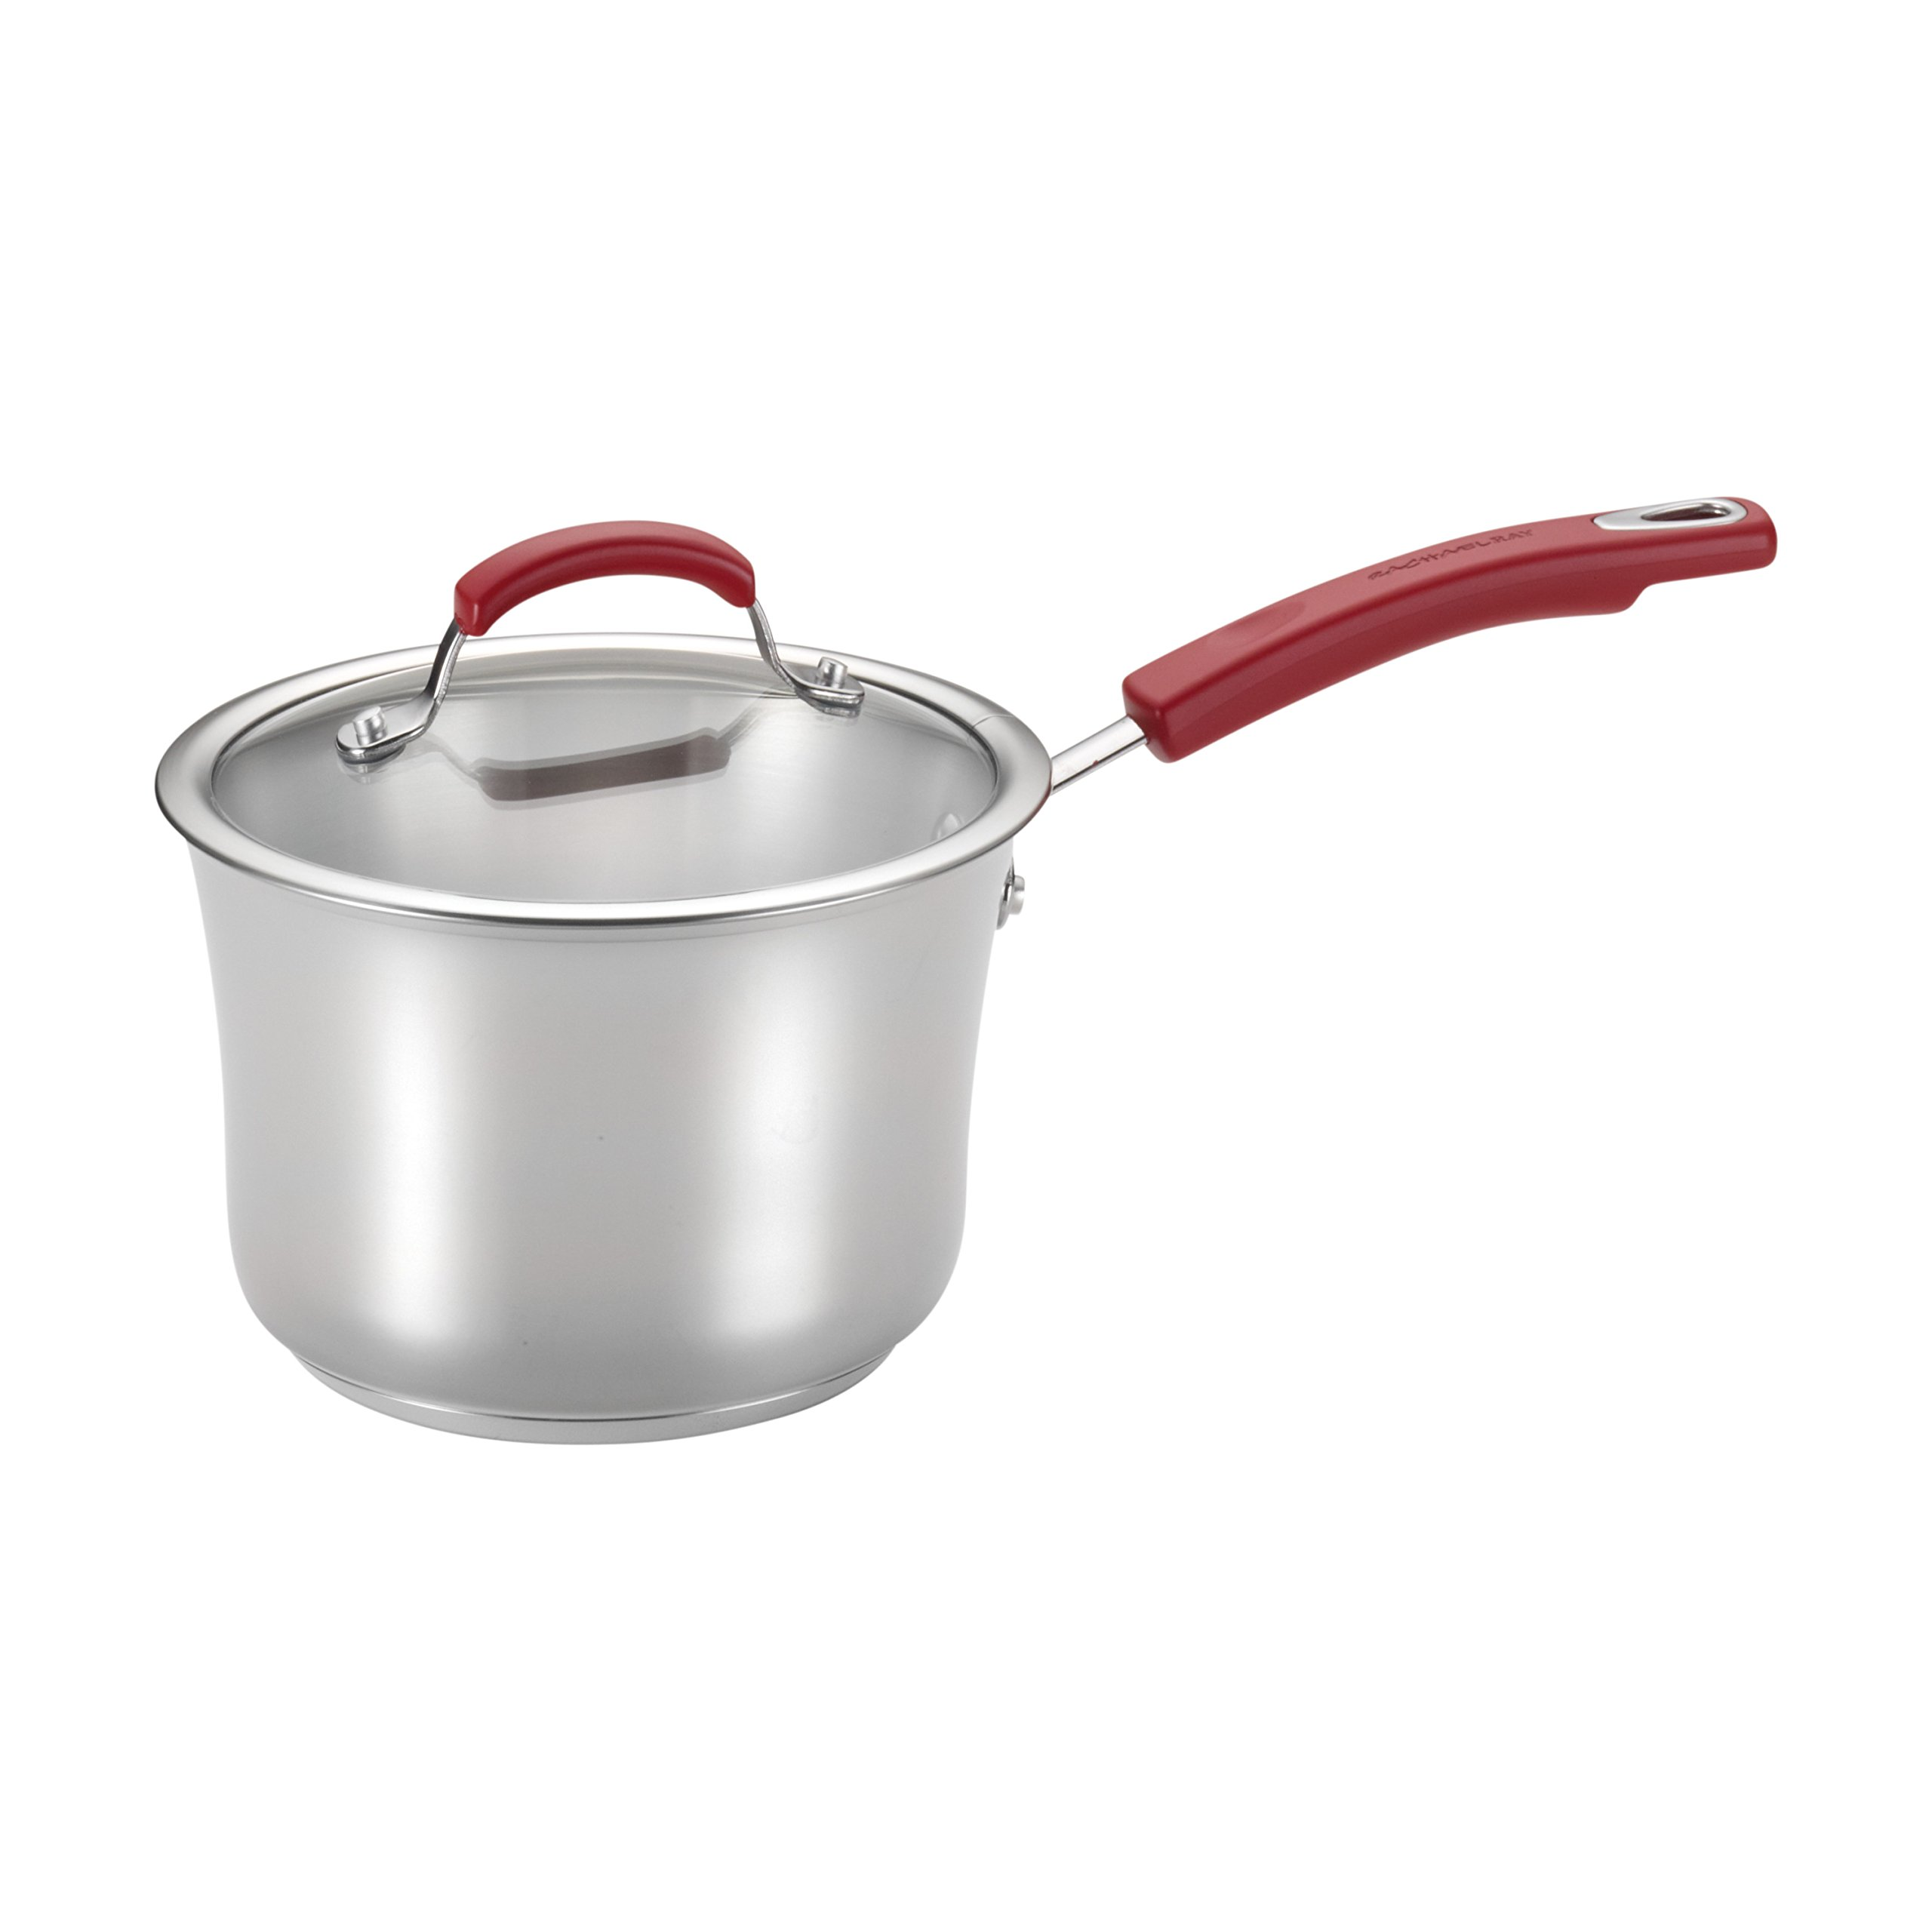 Rachael Ray Classic Brights Stainless Steel 3.5-Quart Covered Saucepan, Red Handles